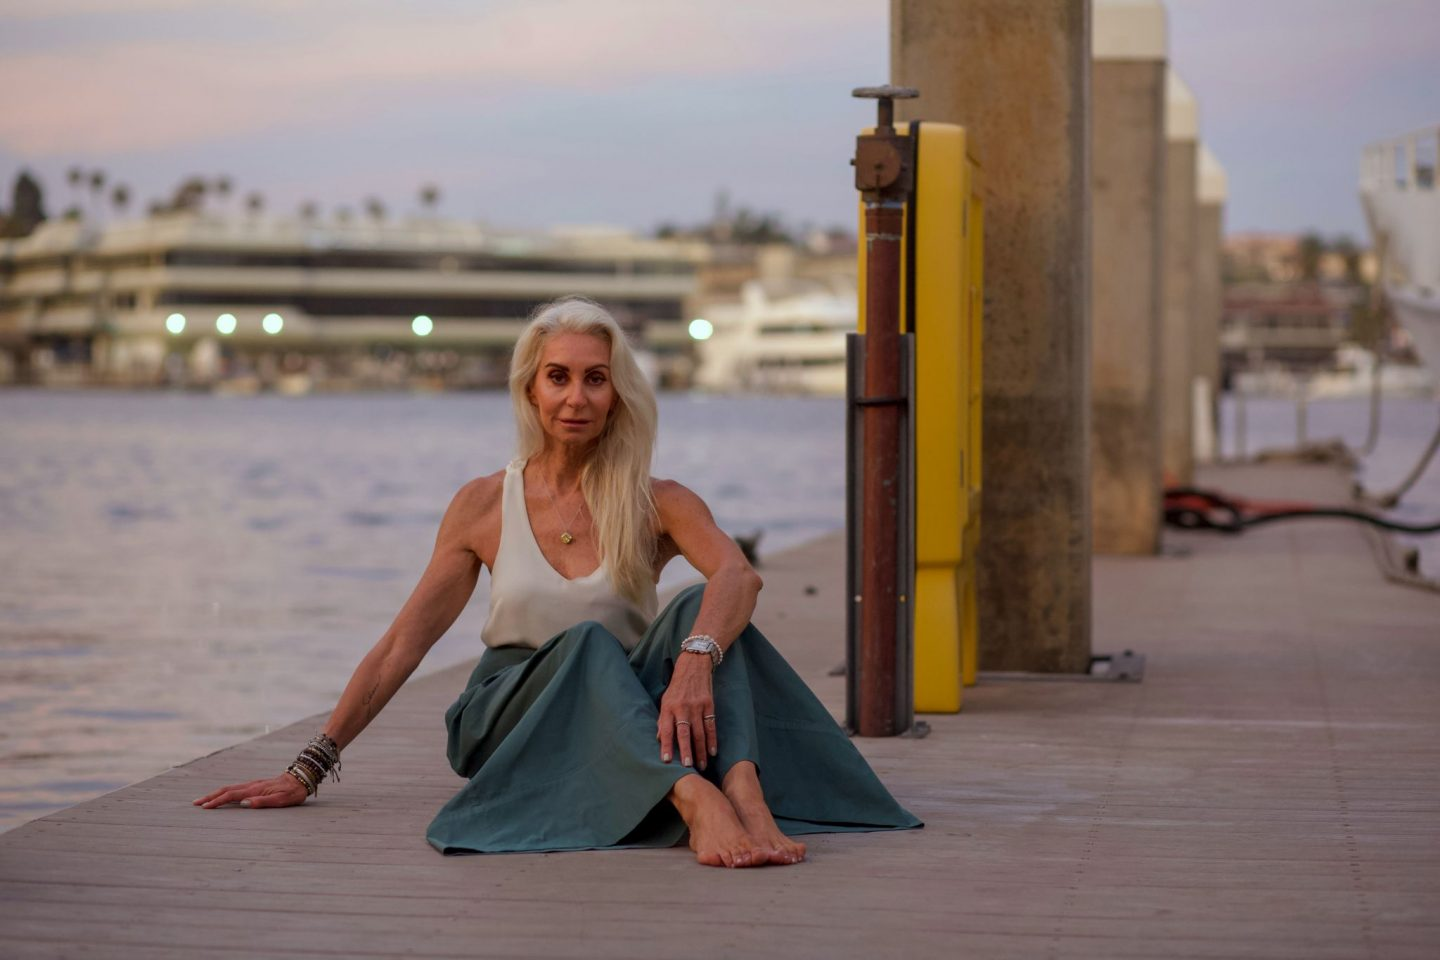 silver haired model by the pier in lido marina, Newport Beach California